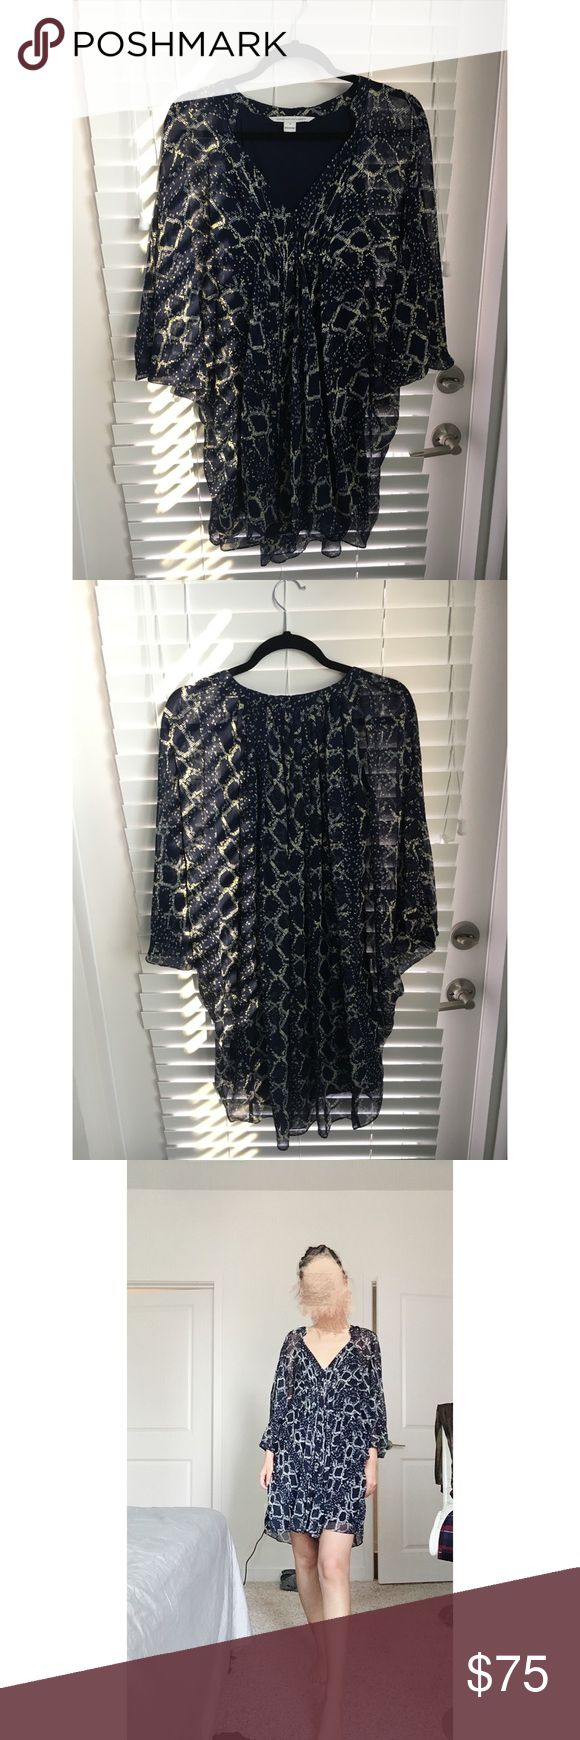 Diane Von Furstenberg silk dress Size 0. Would fits anyone XS, S. Silk lining. Navy blue with yellow/cream print. Perfect for vacation as beach dress or even bikini cover! Never worn. I'm 5'6, 105lbs with small upper body and bigger hip. For your reference, I have plenty space left upper body and some space left around hips trying on this dress. Diane Von Furstenberg Dresses